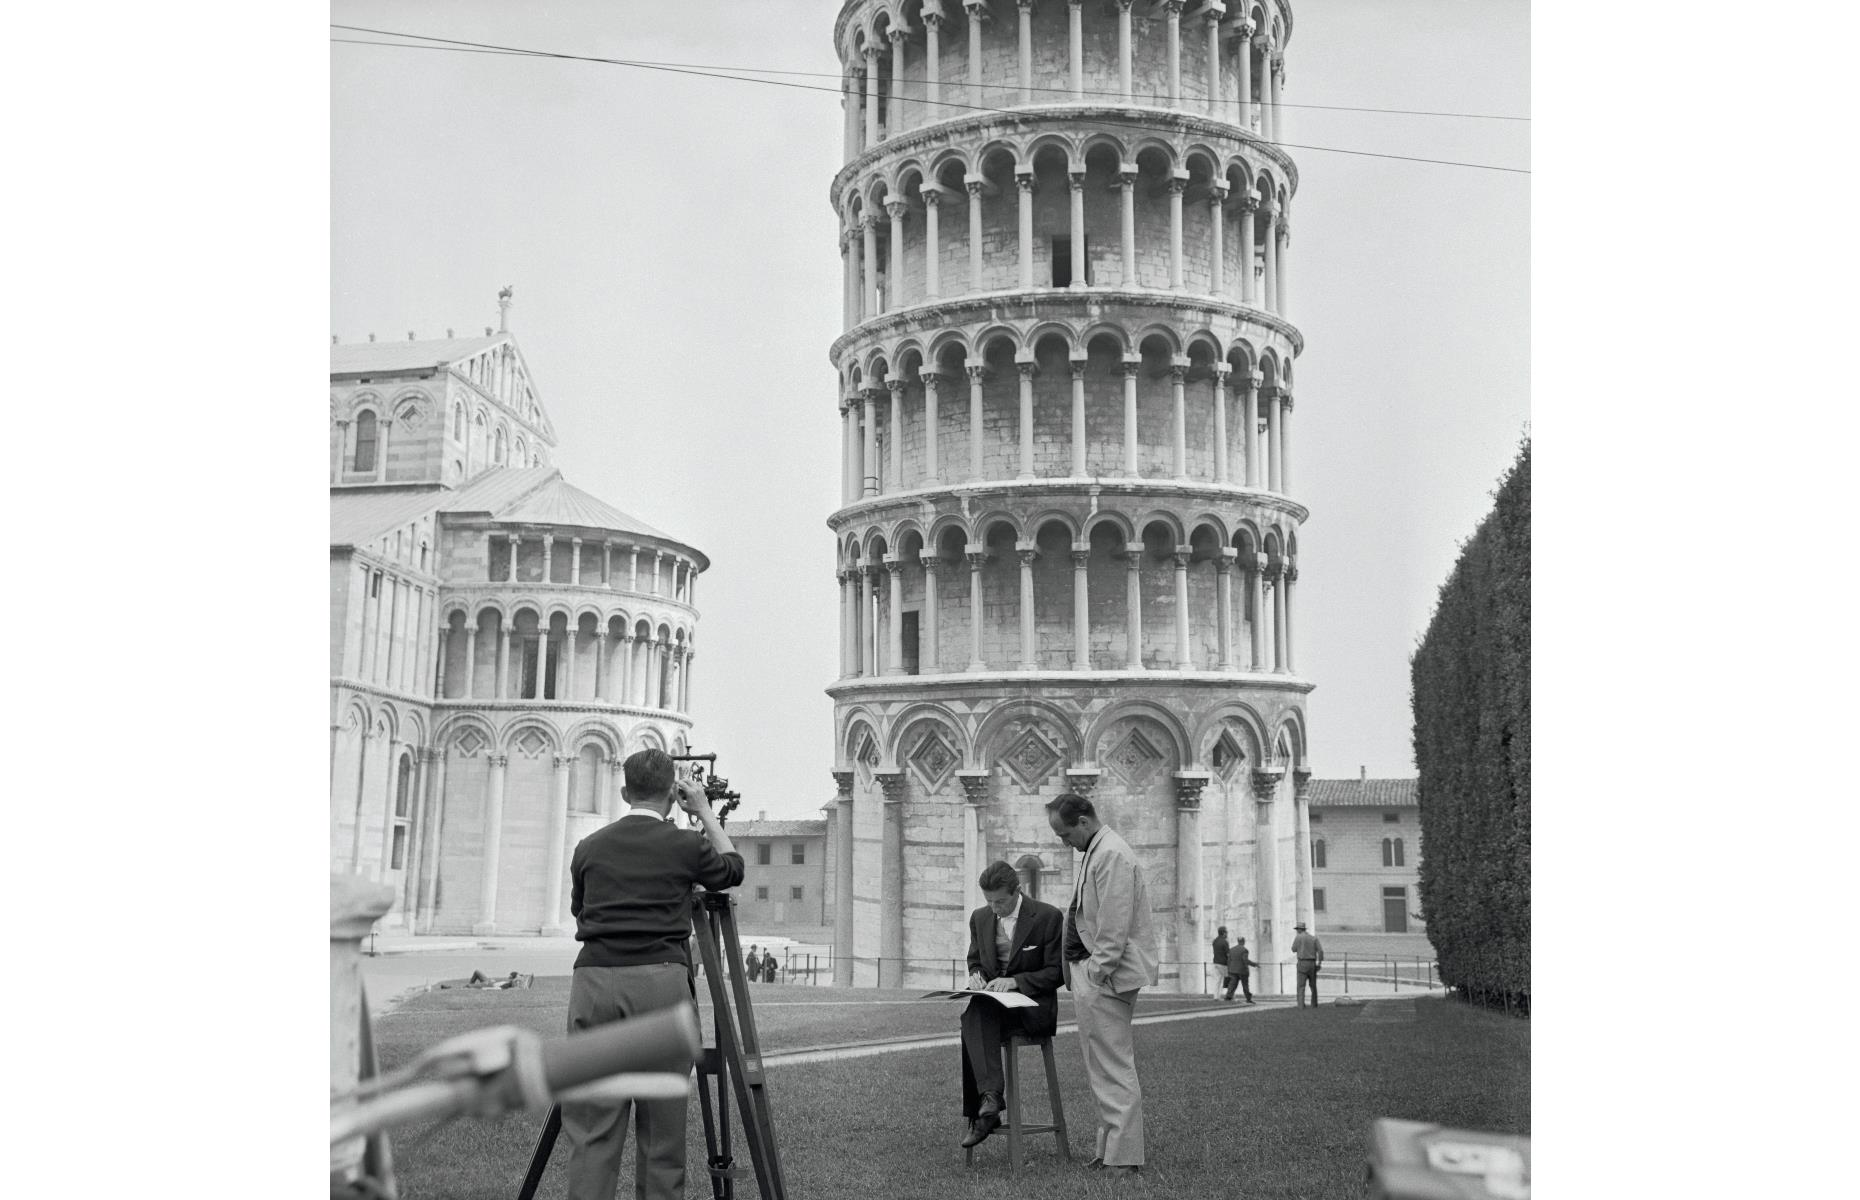 Slide 44 of 51: It's a little-known fact that the Leaning Tower of Pisa, located in the city of Pisa in Tuscany, central Italy, is actually increasing its tilt ever so slightly each year. Pictured here in the 1960s, researchers from the Pisa University Geodesic and Topography Institute carry out an annual measurement to check on the tower's tilt.